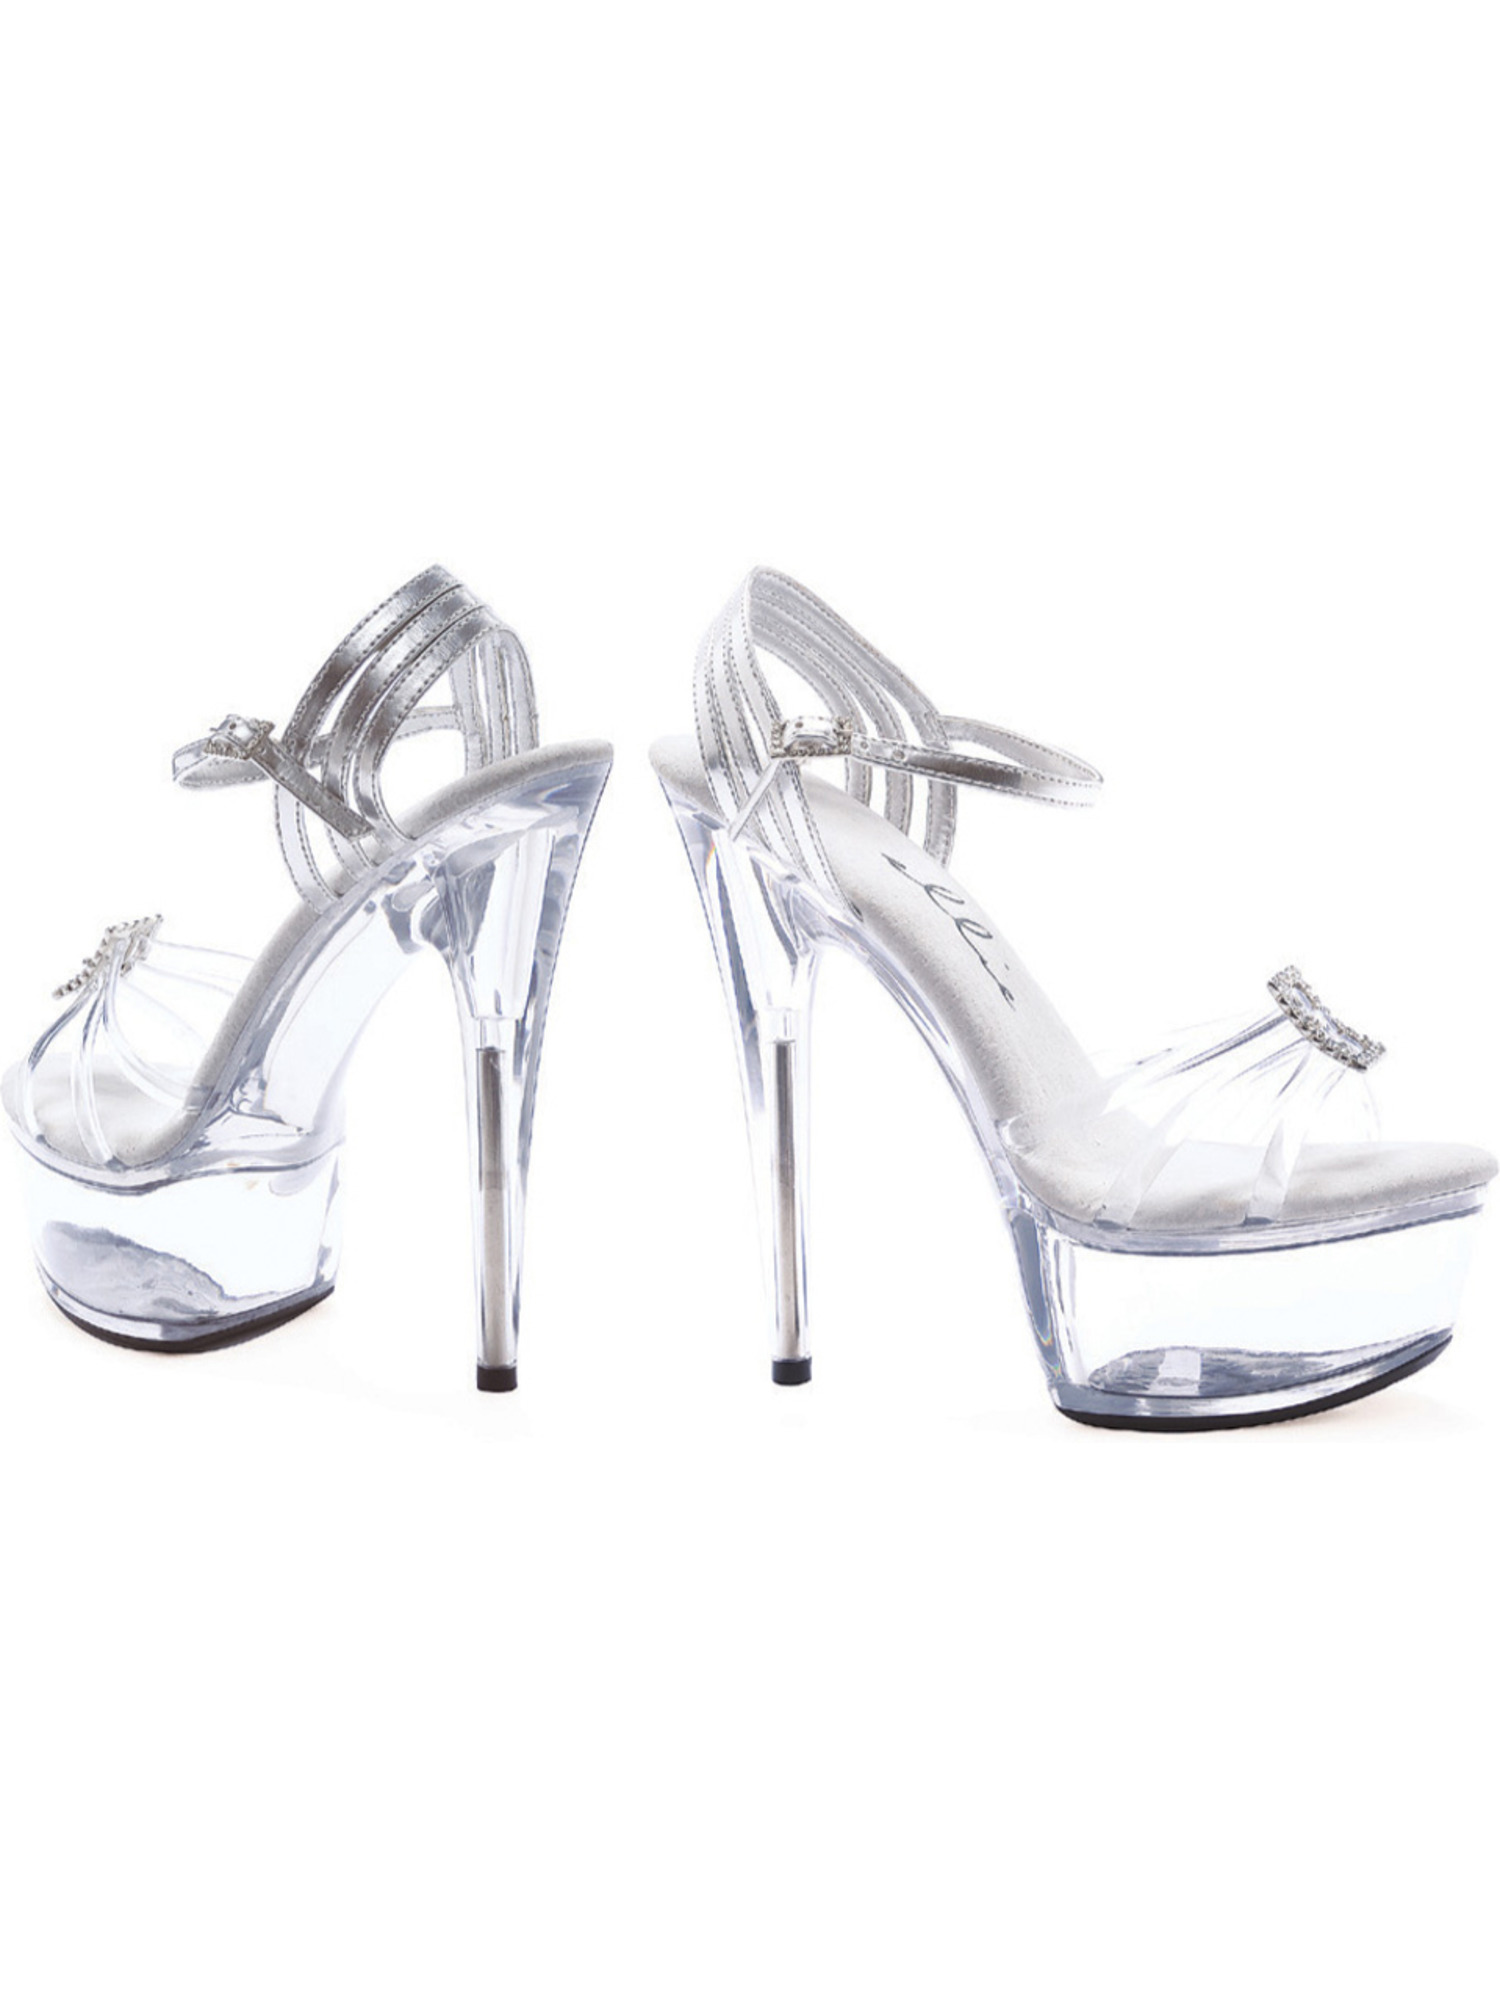 6 Inch Clear Open Platform Sandals Rhinestone Buckles Open Clear Toe Shoes 741ed0